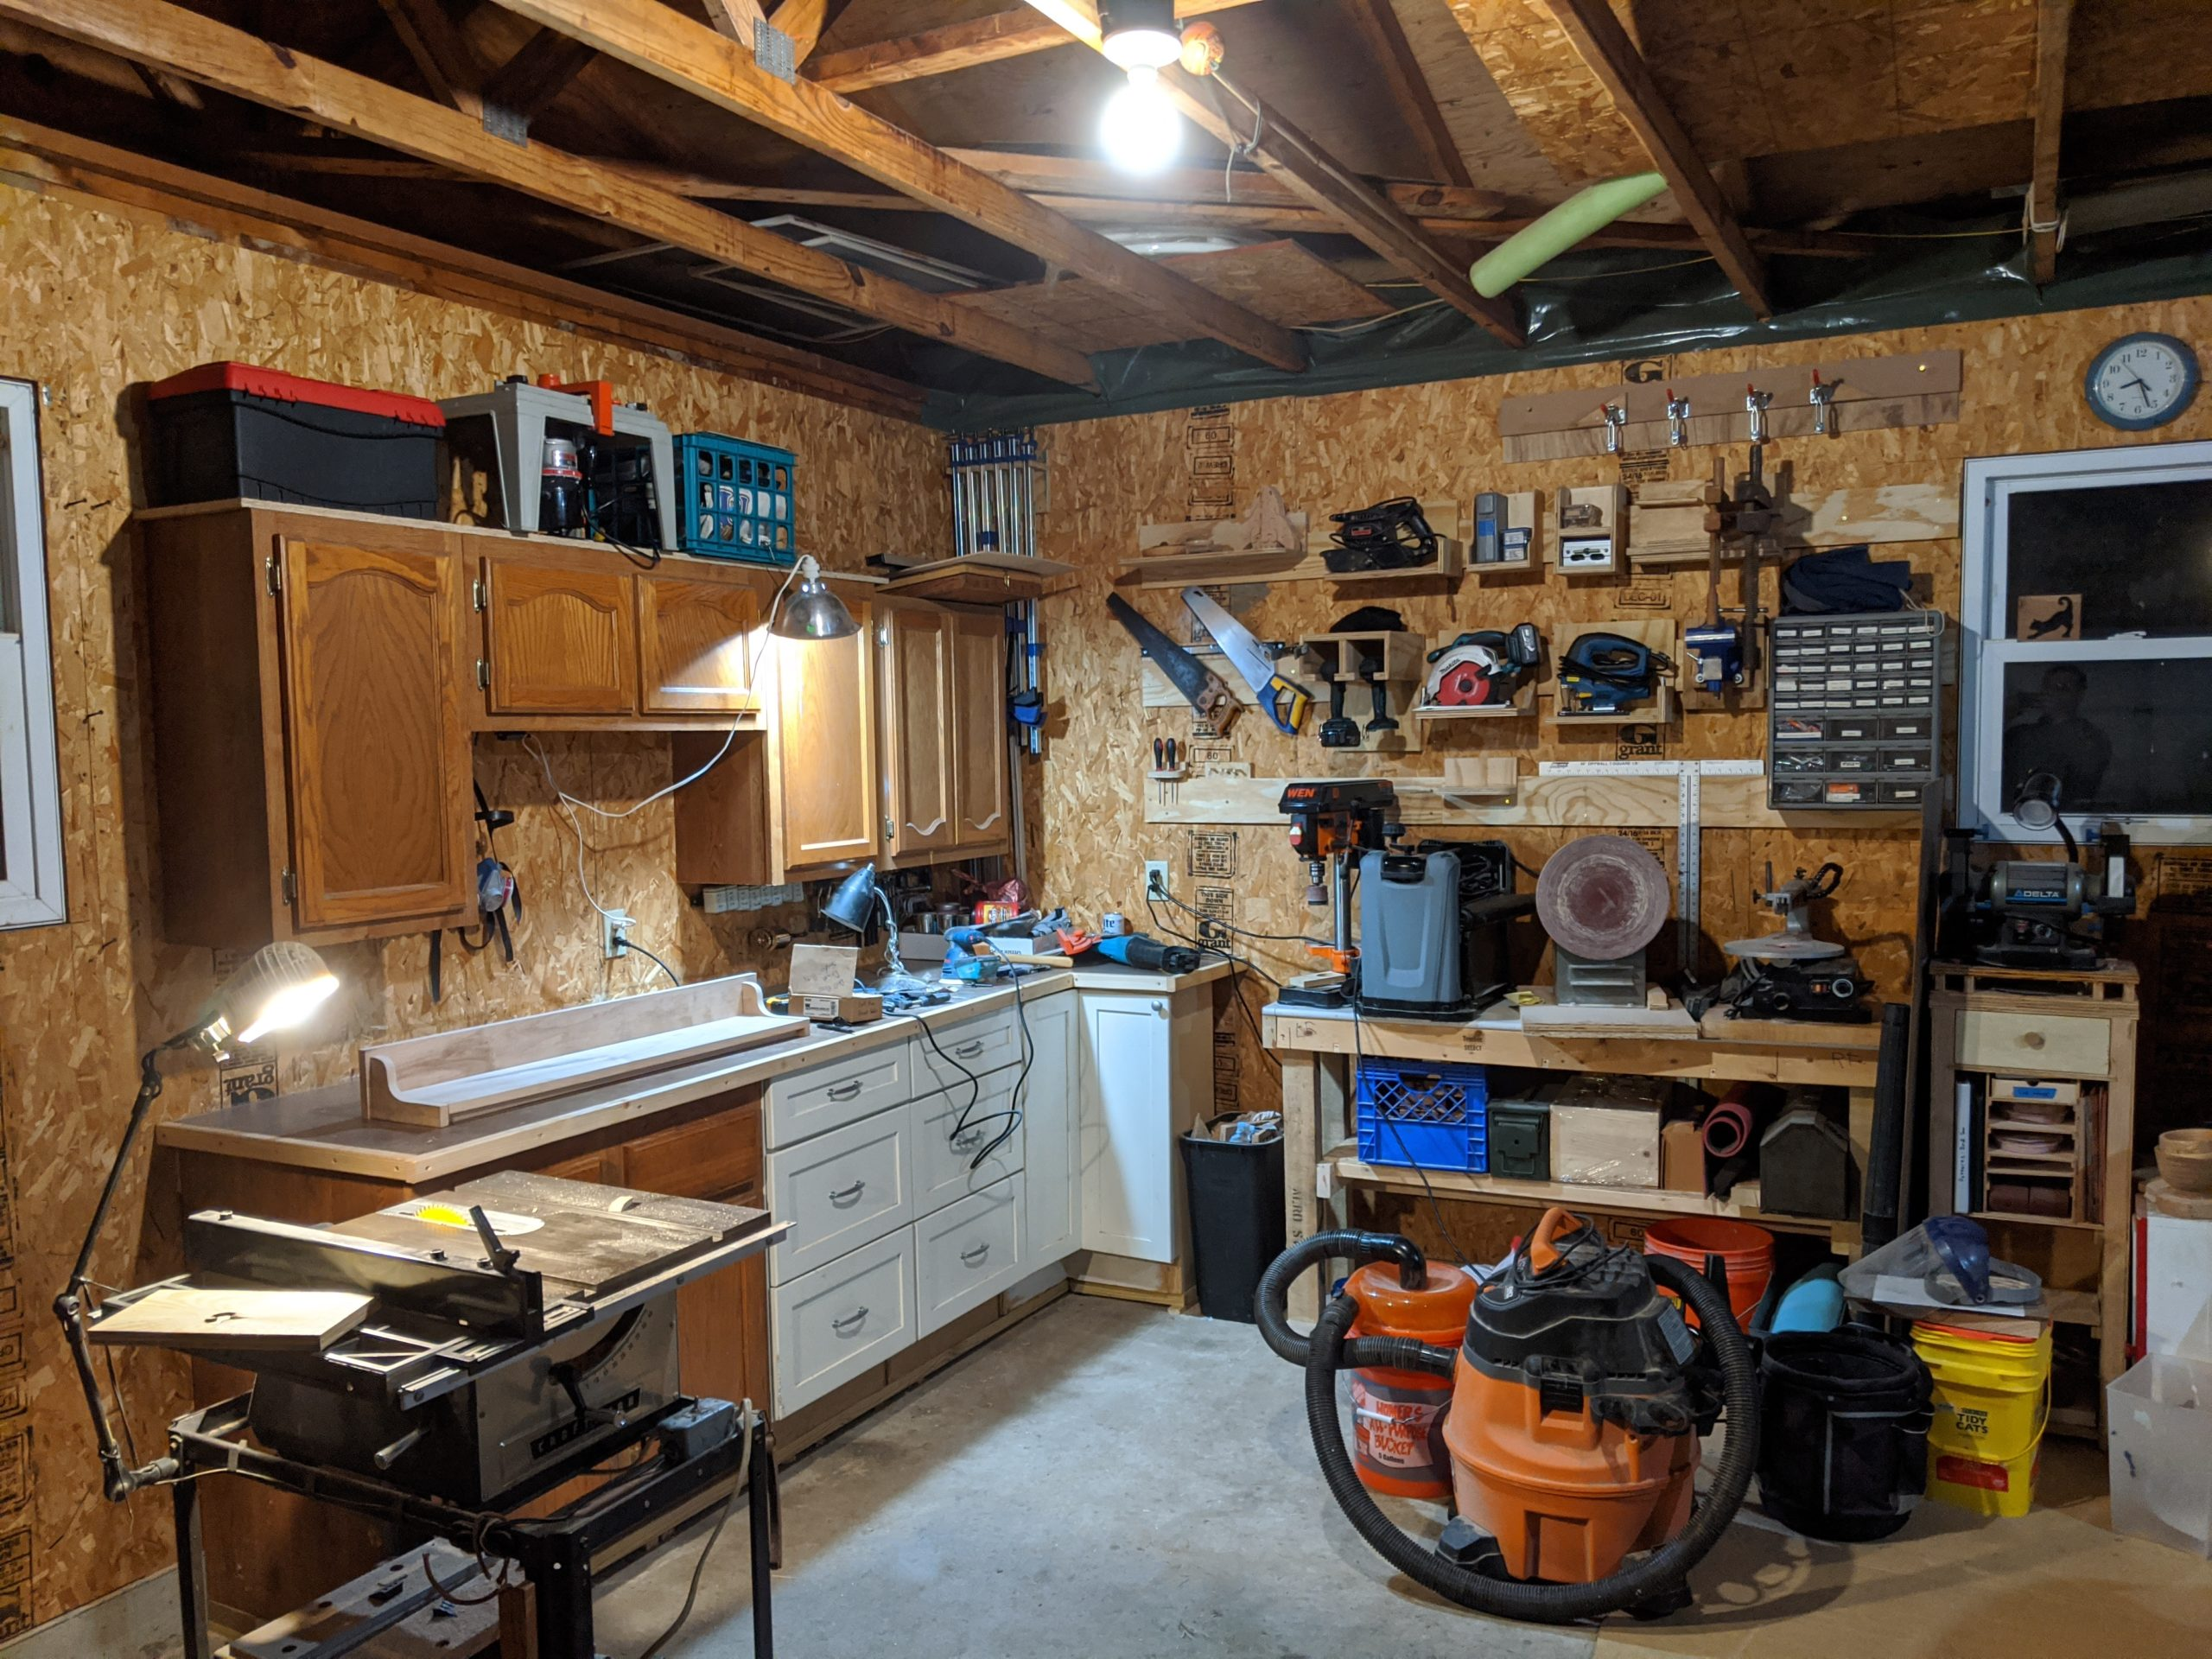 A new woodworking space